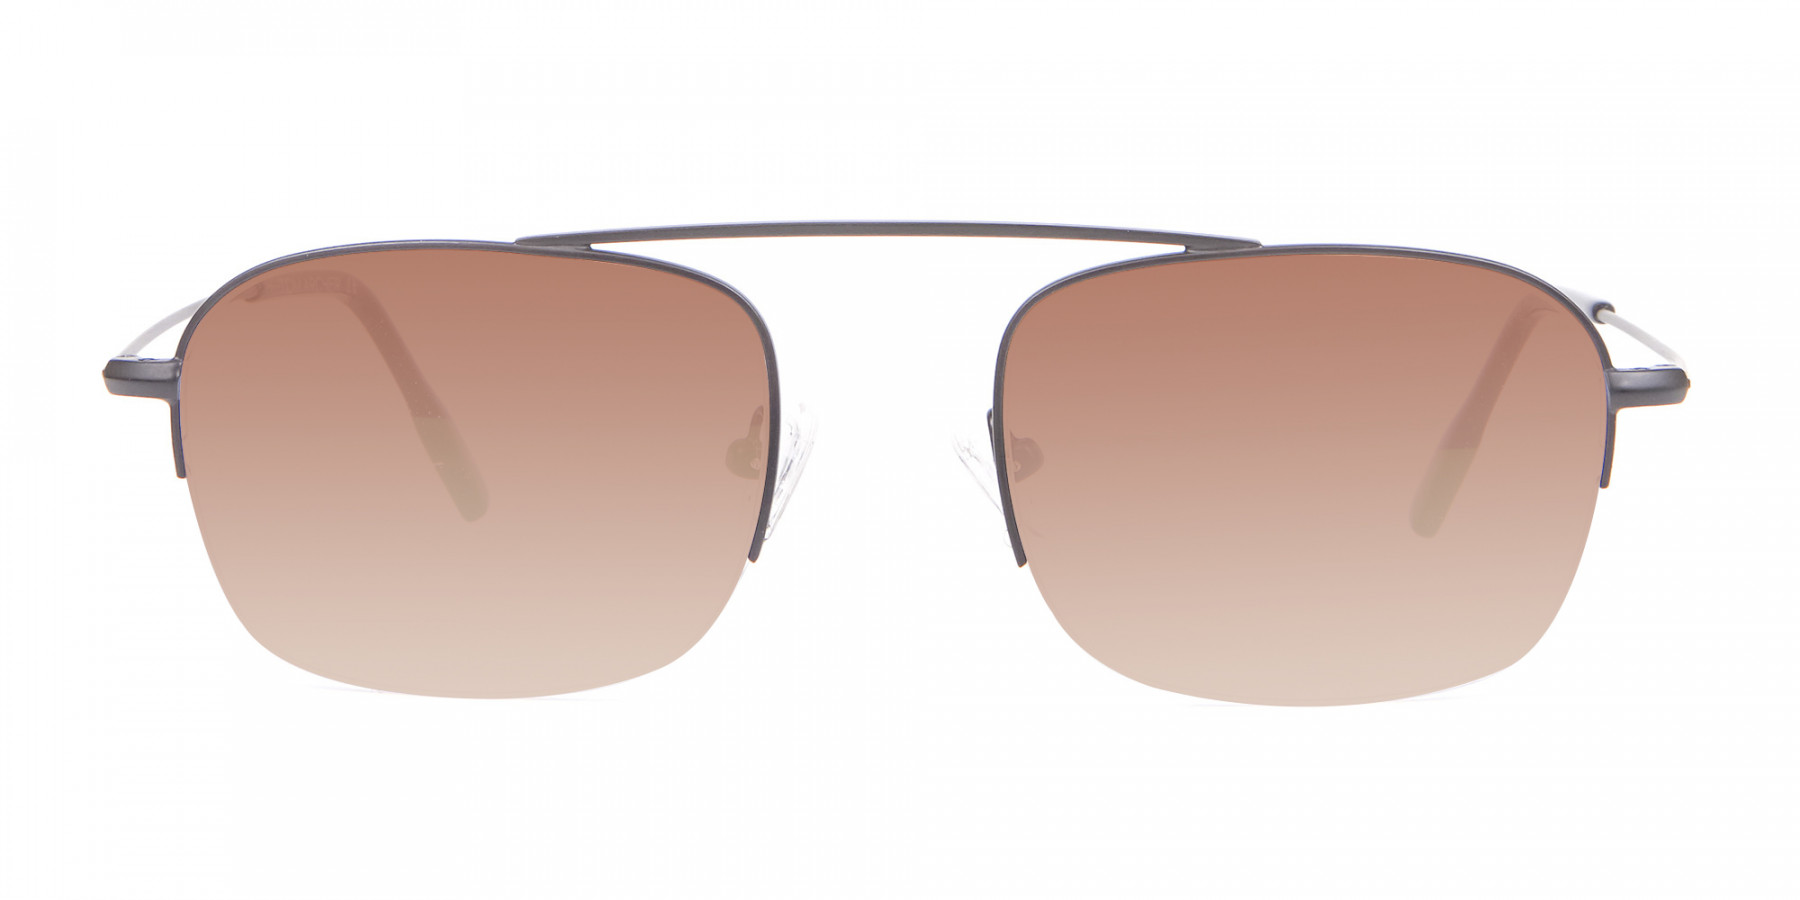 Black Square Sunglasses - 3